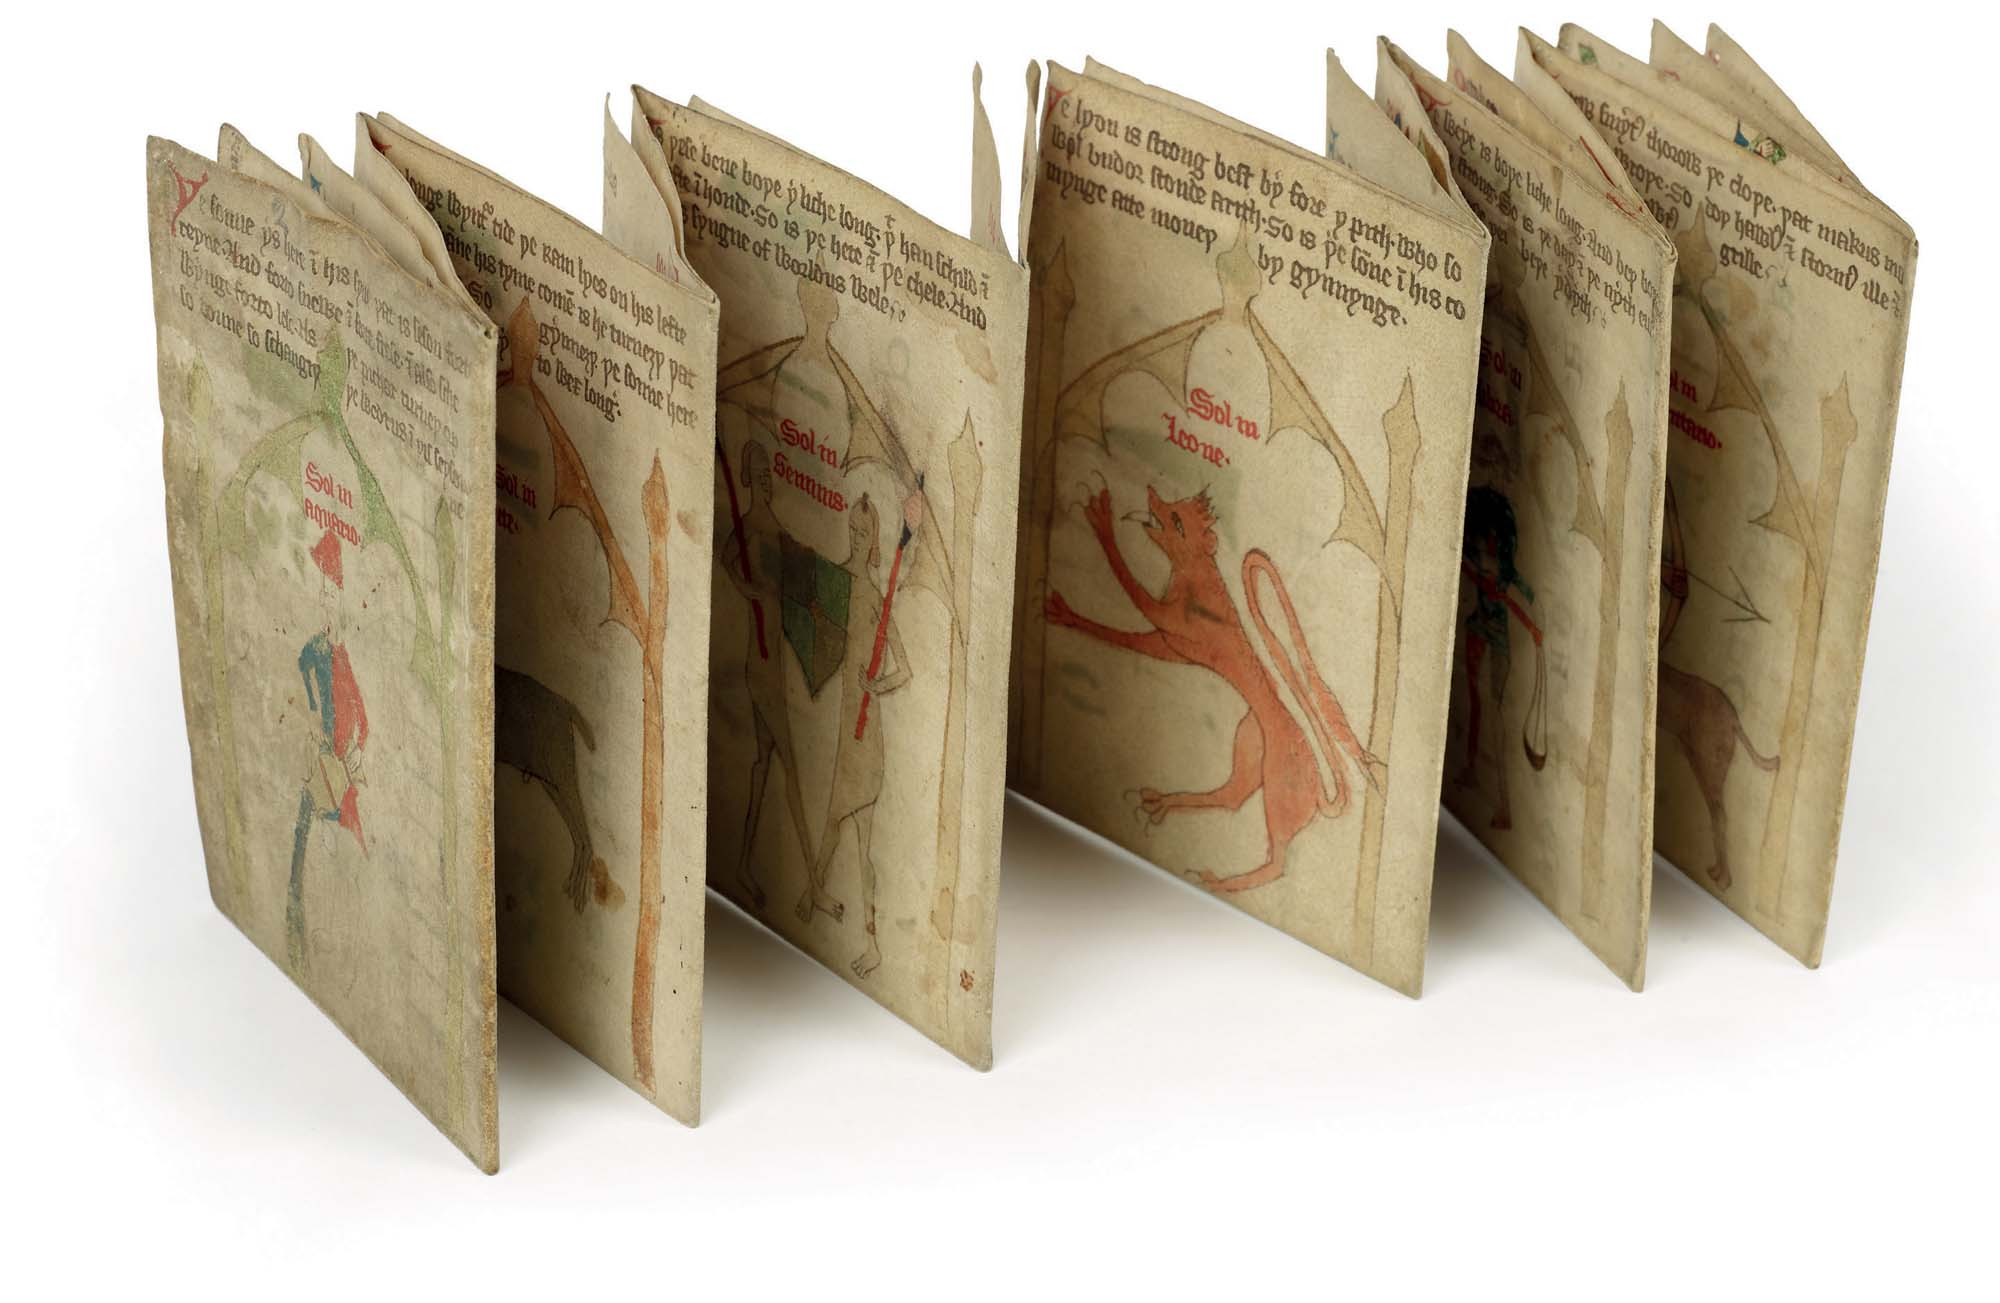 a photo of a concertina manuscript with medieval drawing visible inside its pages